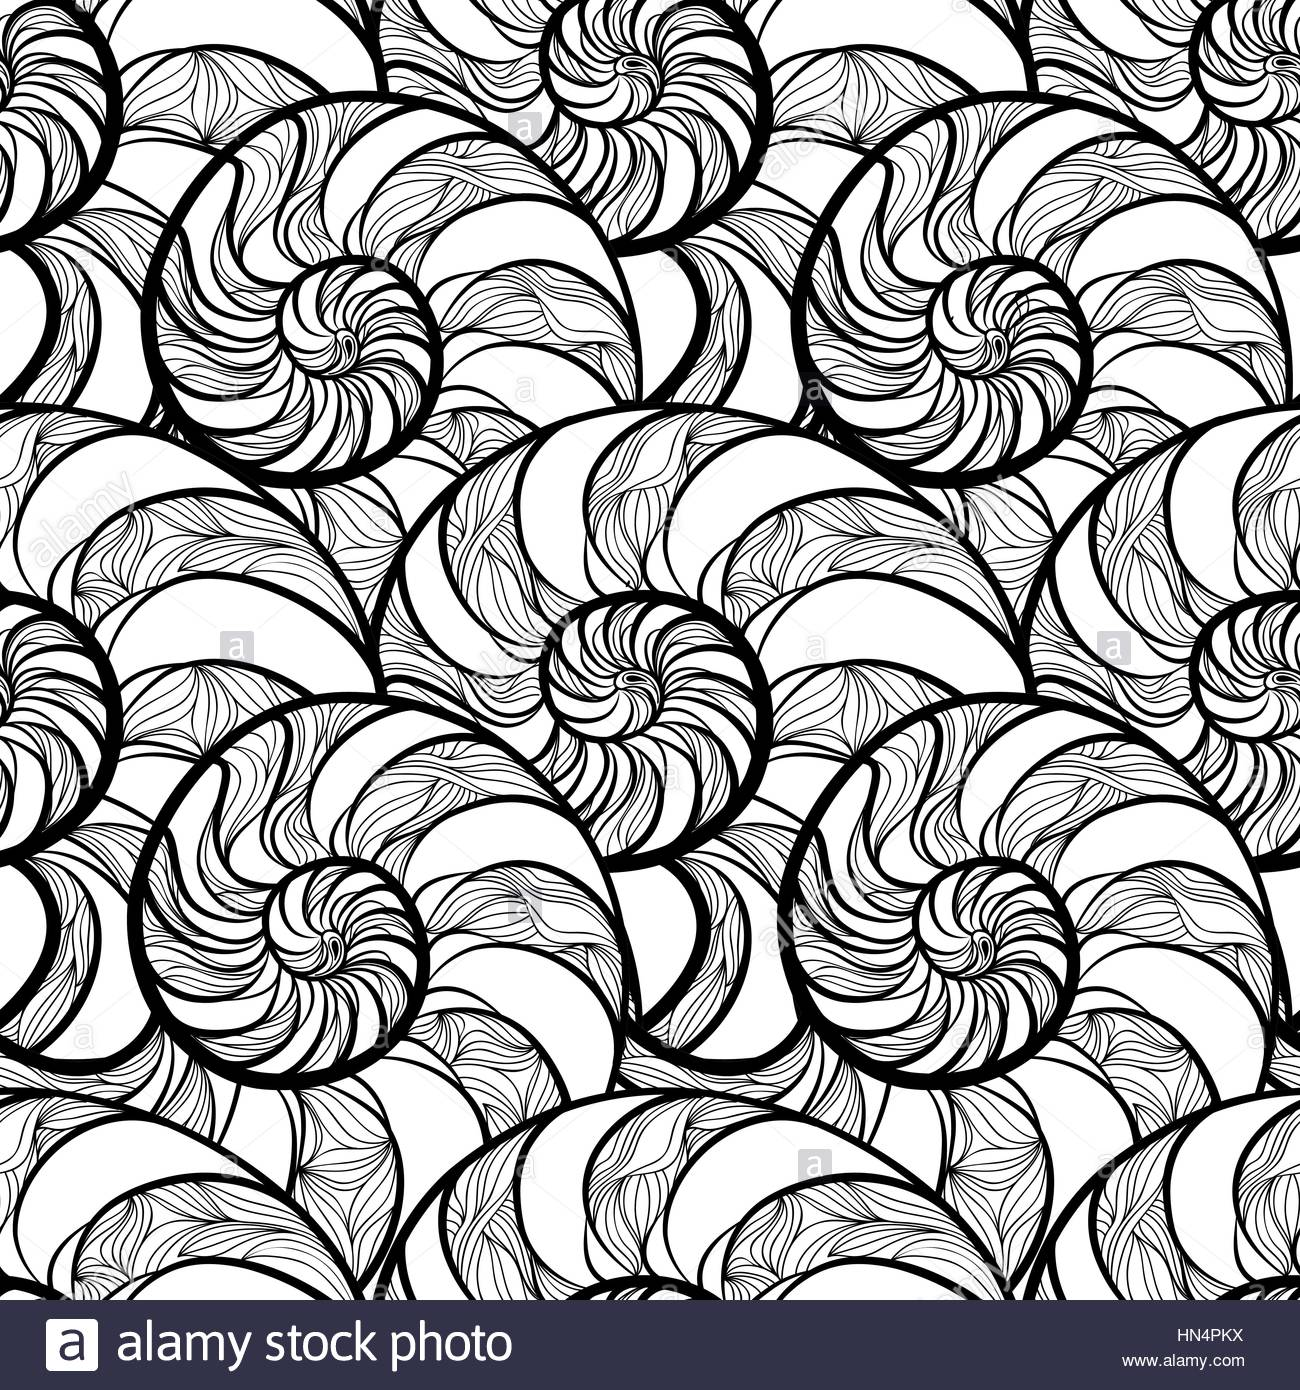 1300x1390 Abstract Ornamental Spiral Seamless Black And White Outline